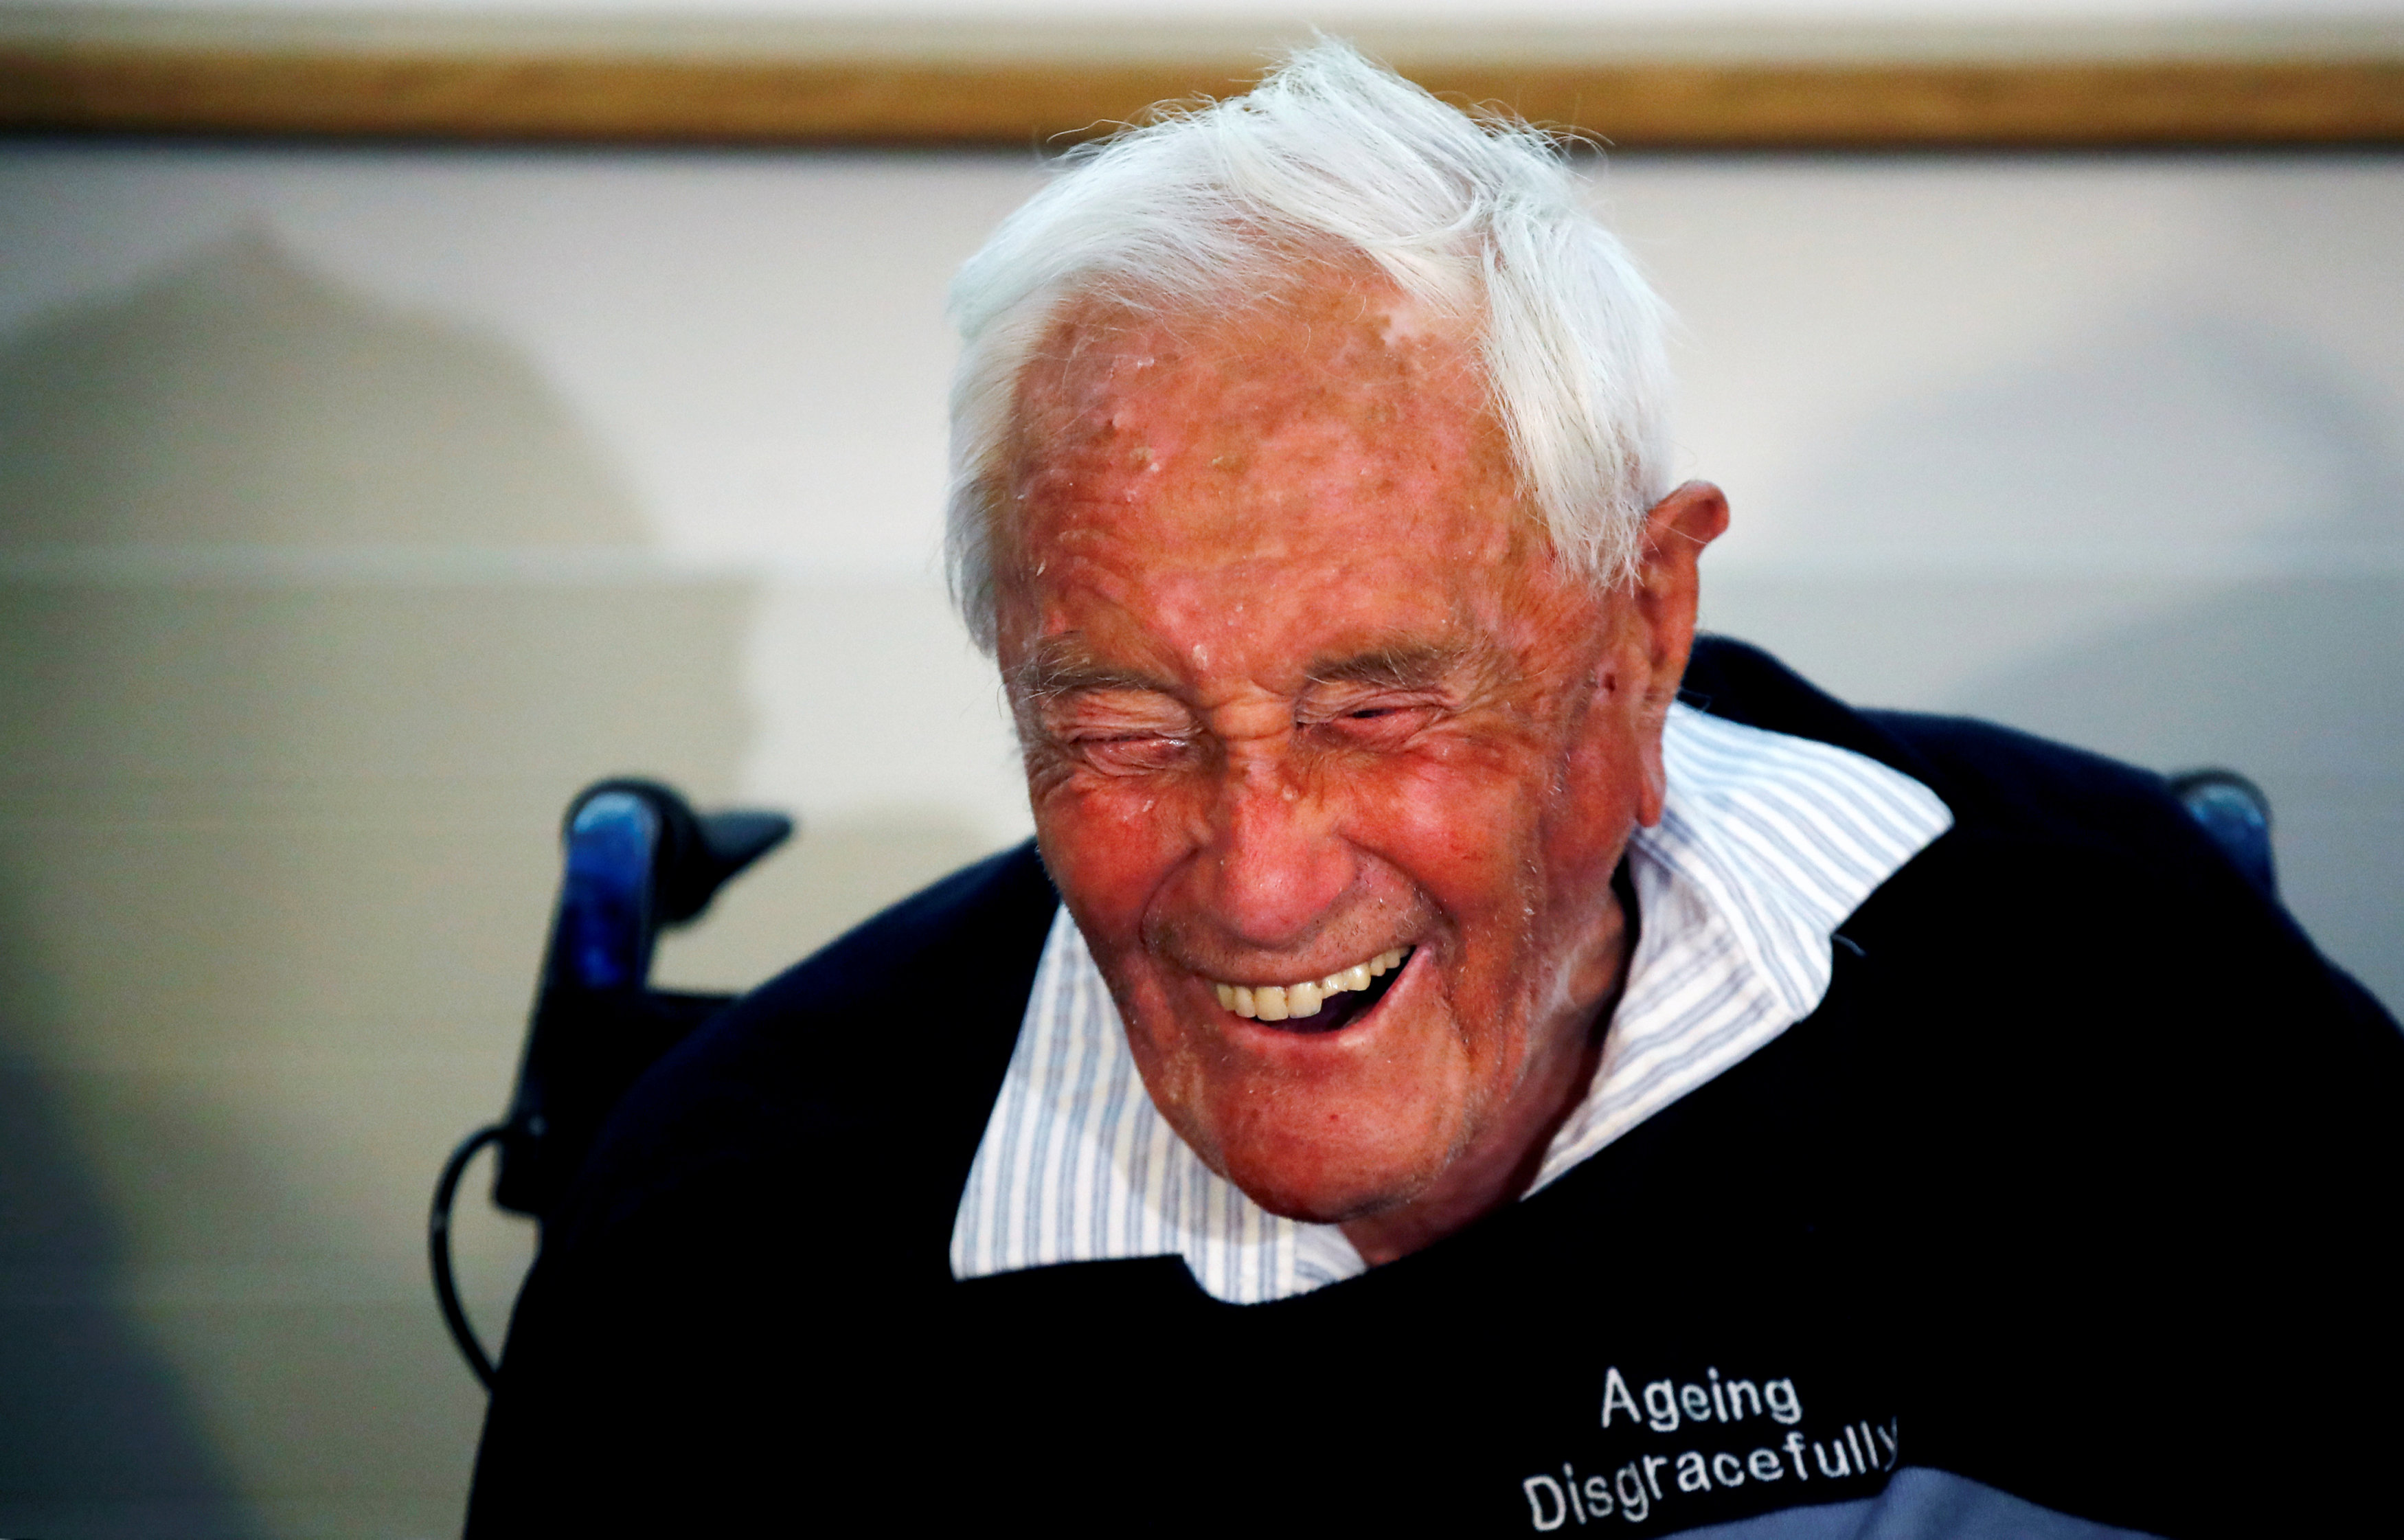 David Goodall, 104, reacts during a news conference a day before he intends to take his own life in assisted suicide, in Basel, Switzerland May 9, 2018. Photo: REUTERS